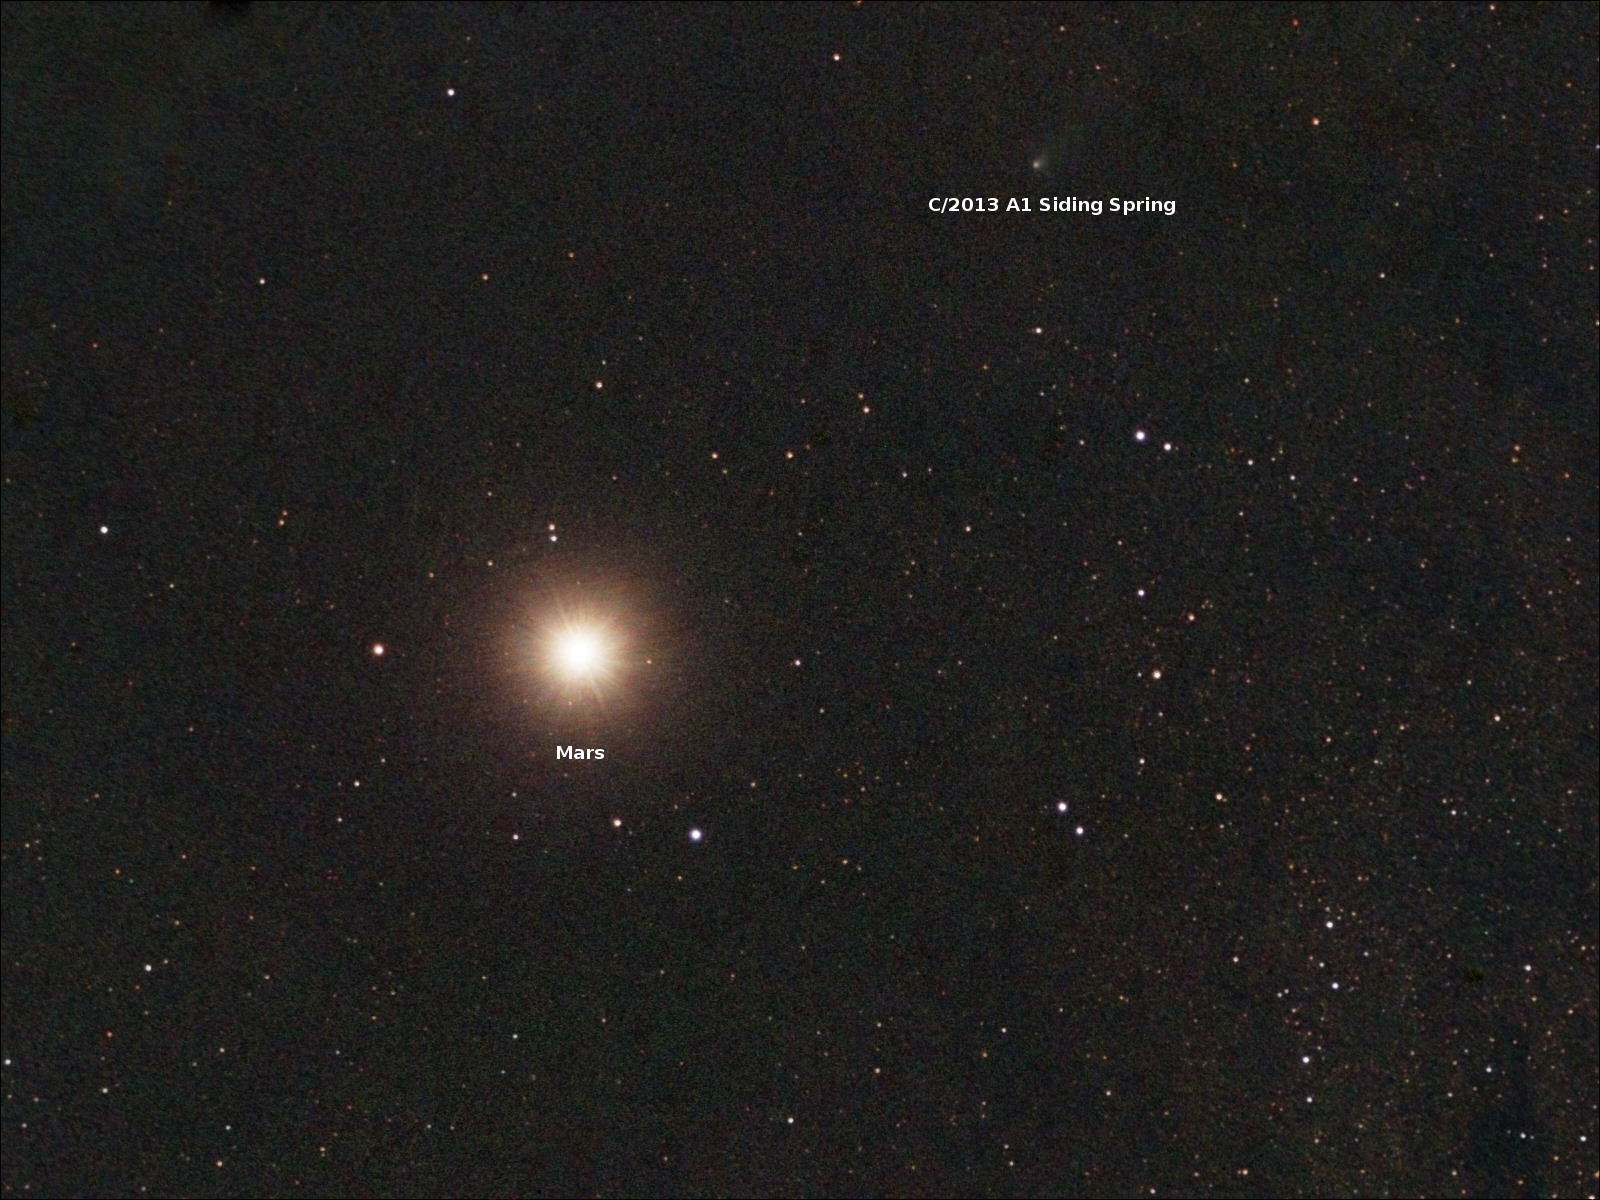 Mars and Siding Spring seen on the day of their closest approach by Scott Ferguson, Florida, USA. Image & live feeds via https://www.facebook.com/groups/cioc.sidingspring/